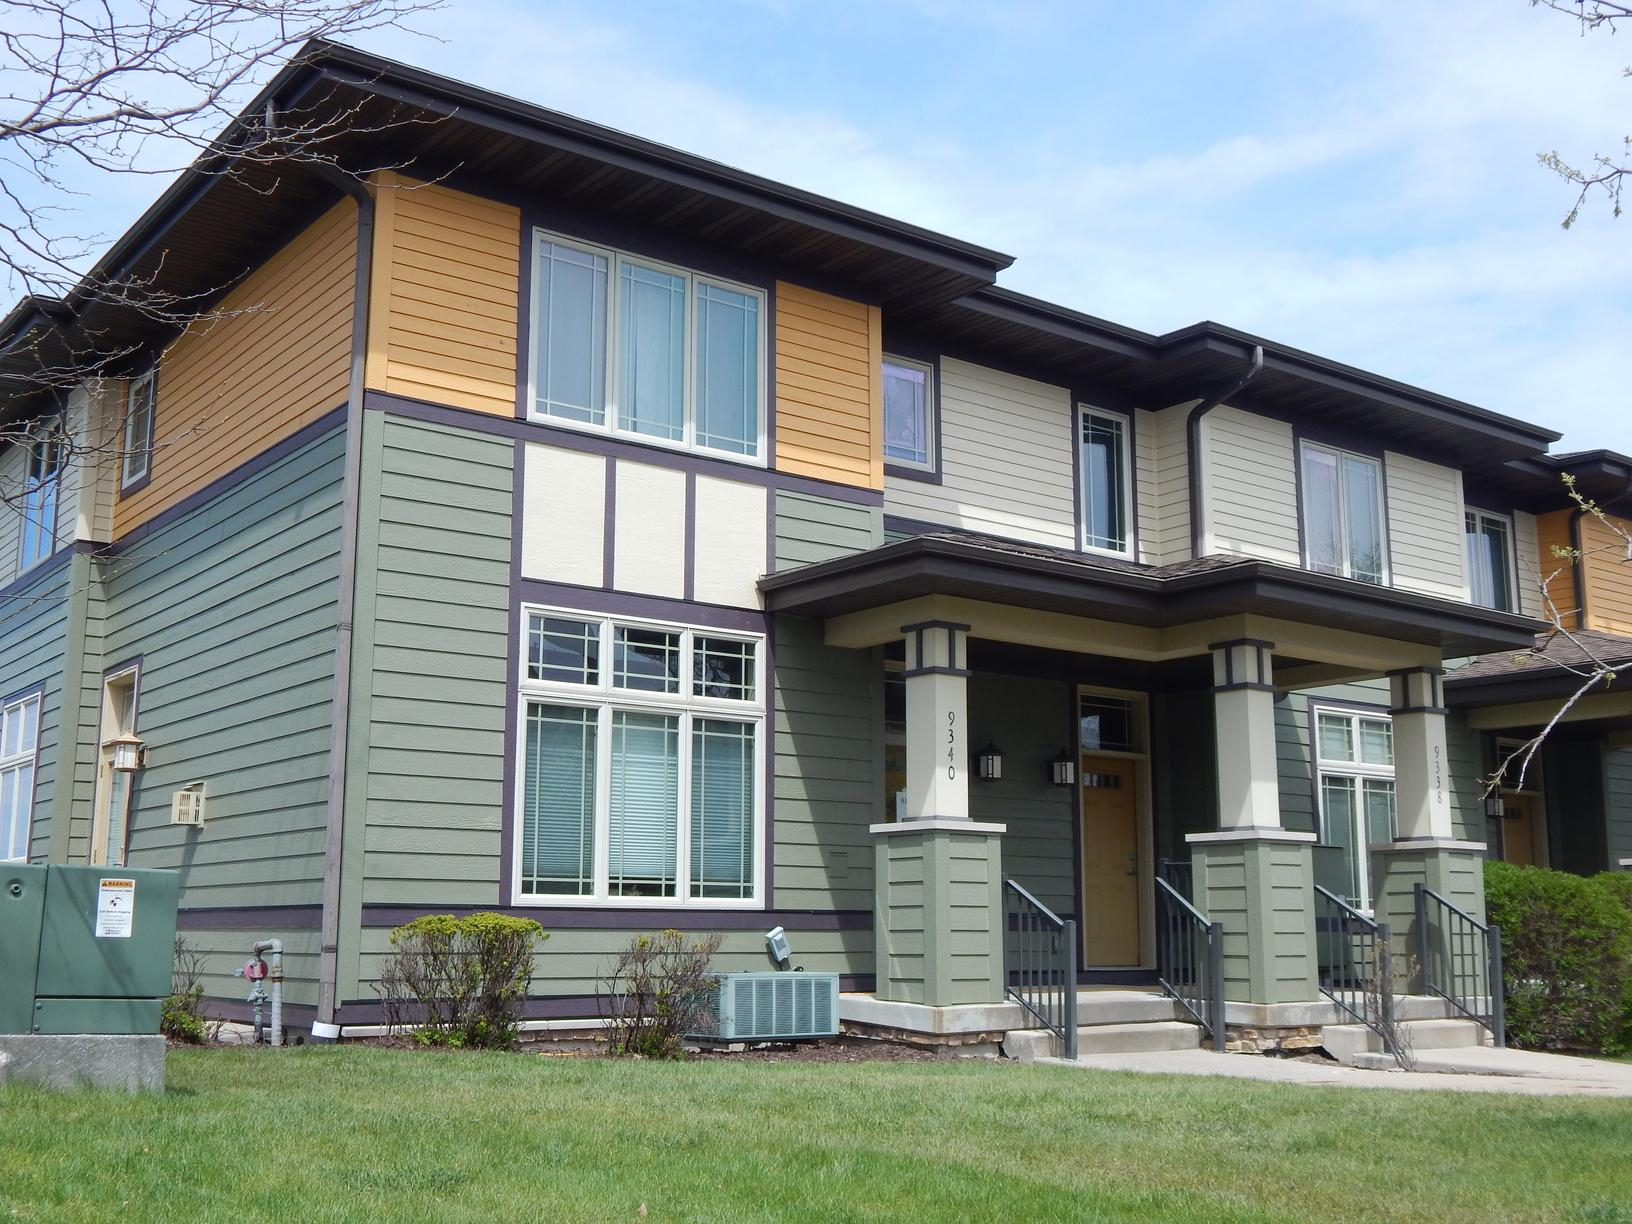 Siding Siding Replacement On Condo Complex In Middleton